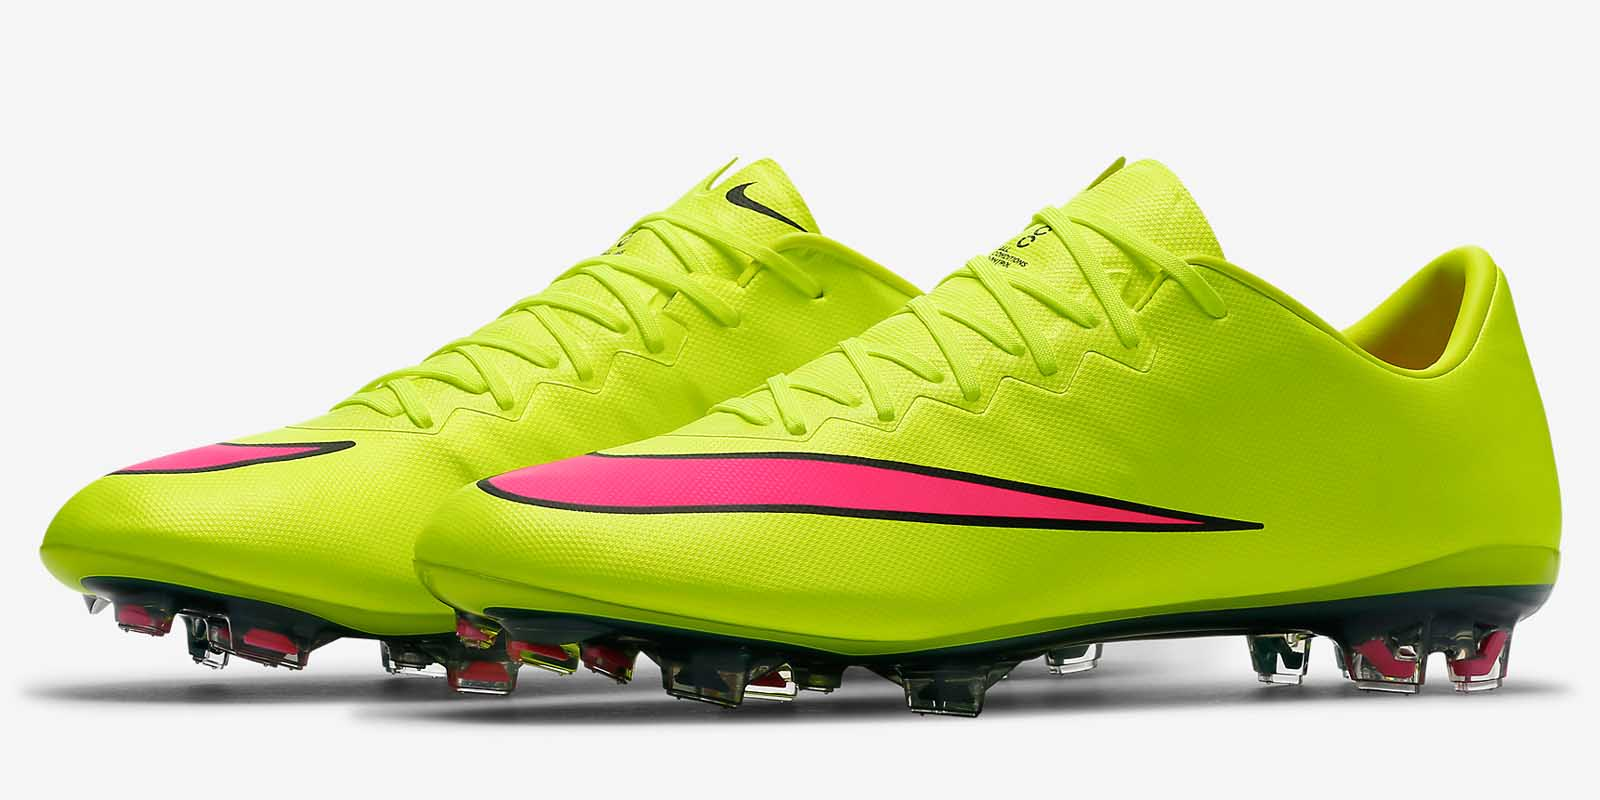 volt pink nike mercurial vapor x 2015 boot released. Black Bedroom Furniture Sets. Home Design Ideas